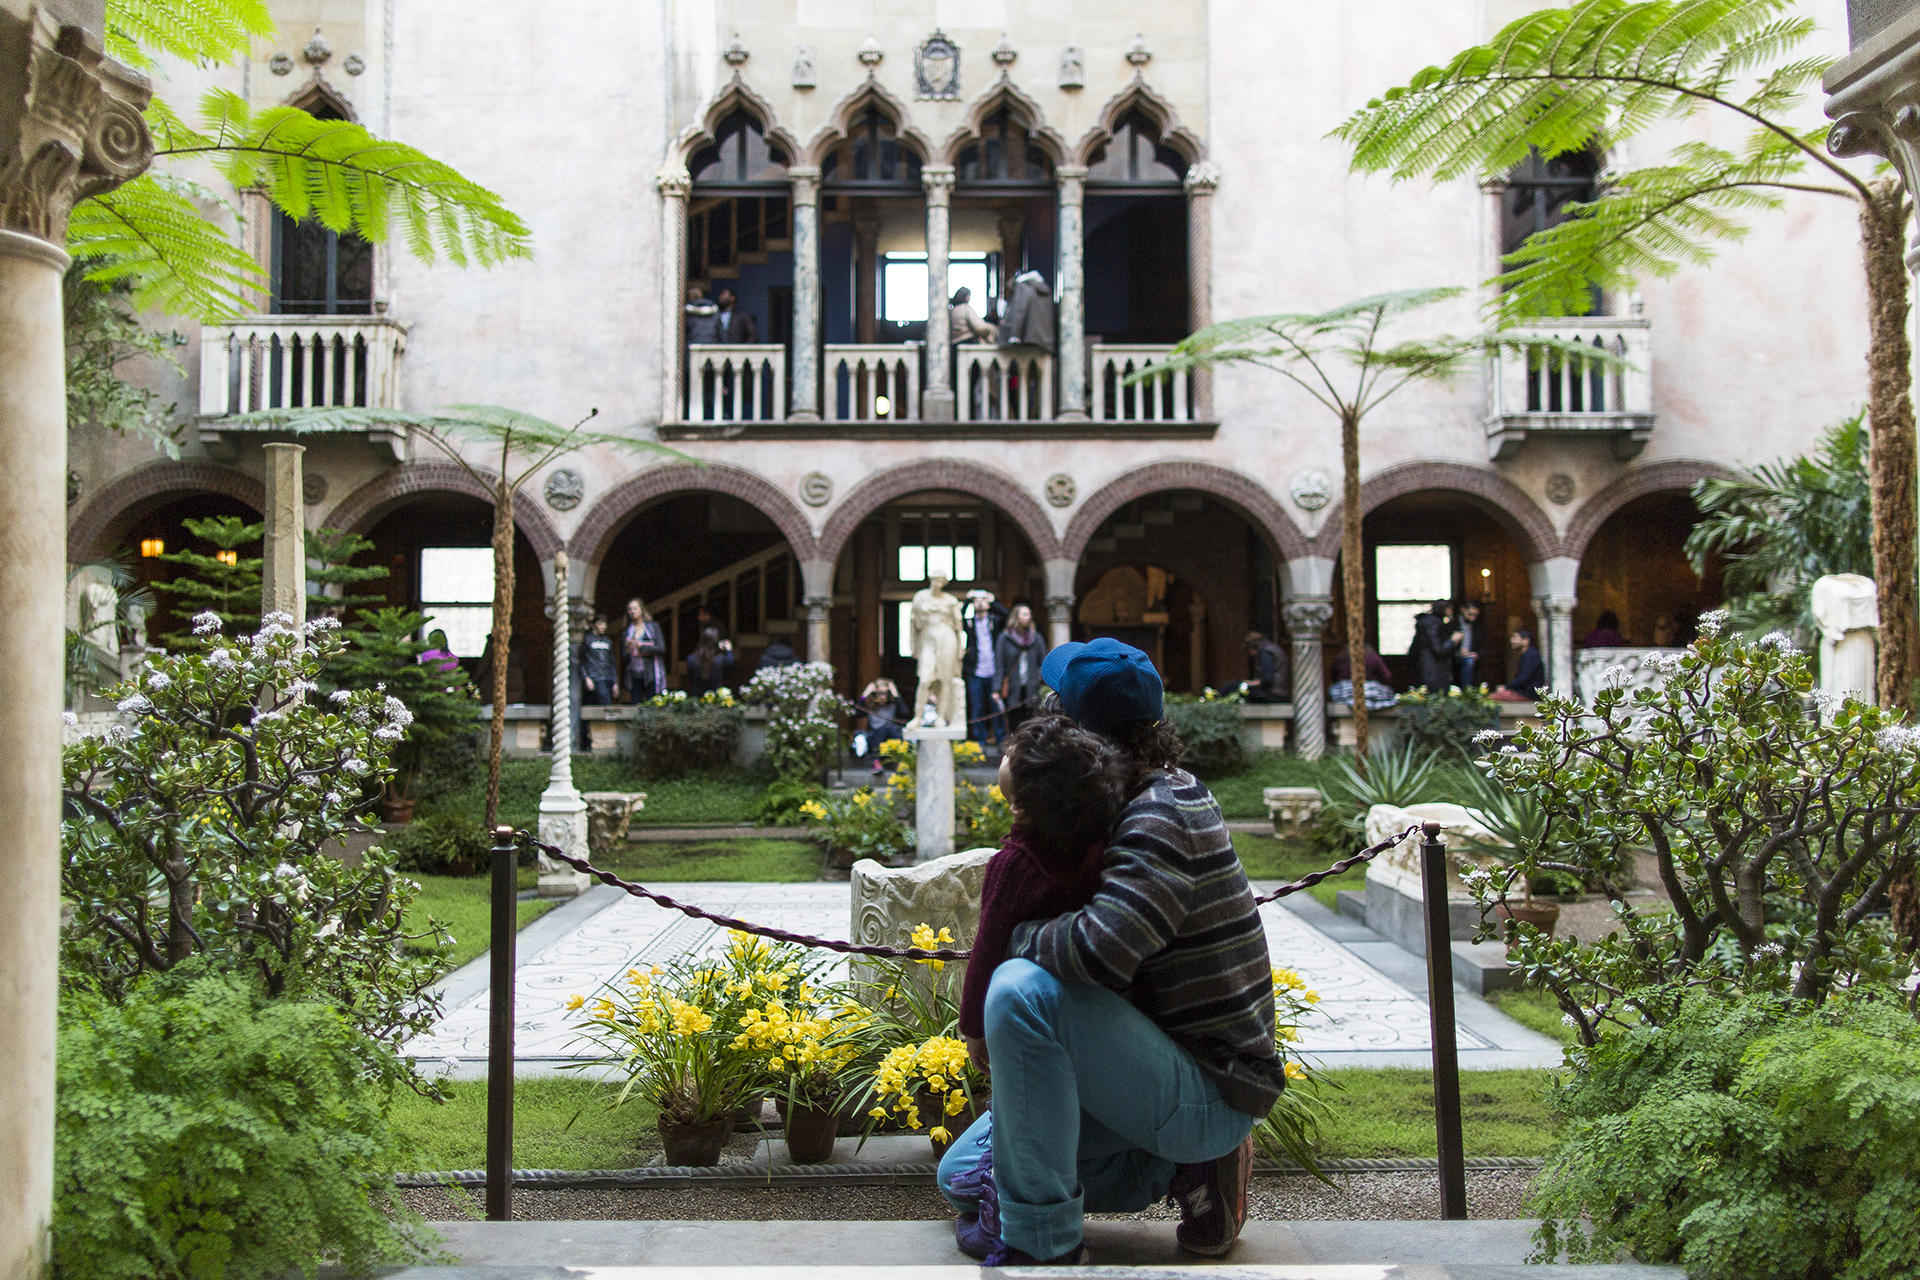 Visitors in the courtyard. Photo by Matt Teuten.